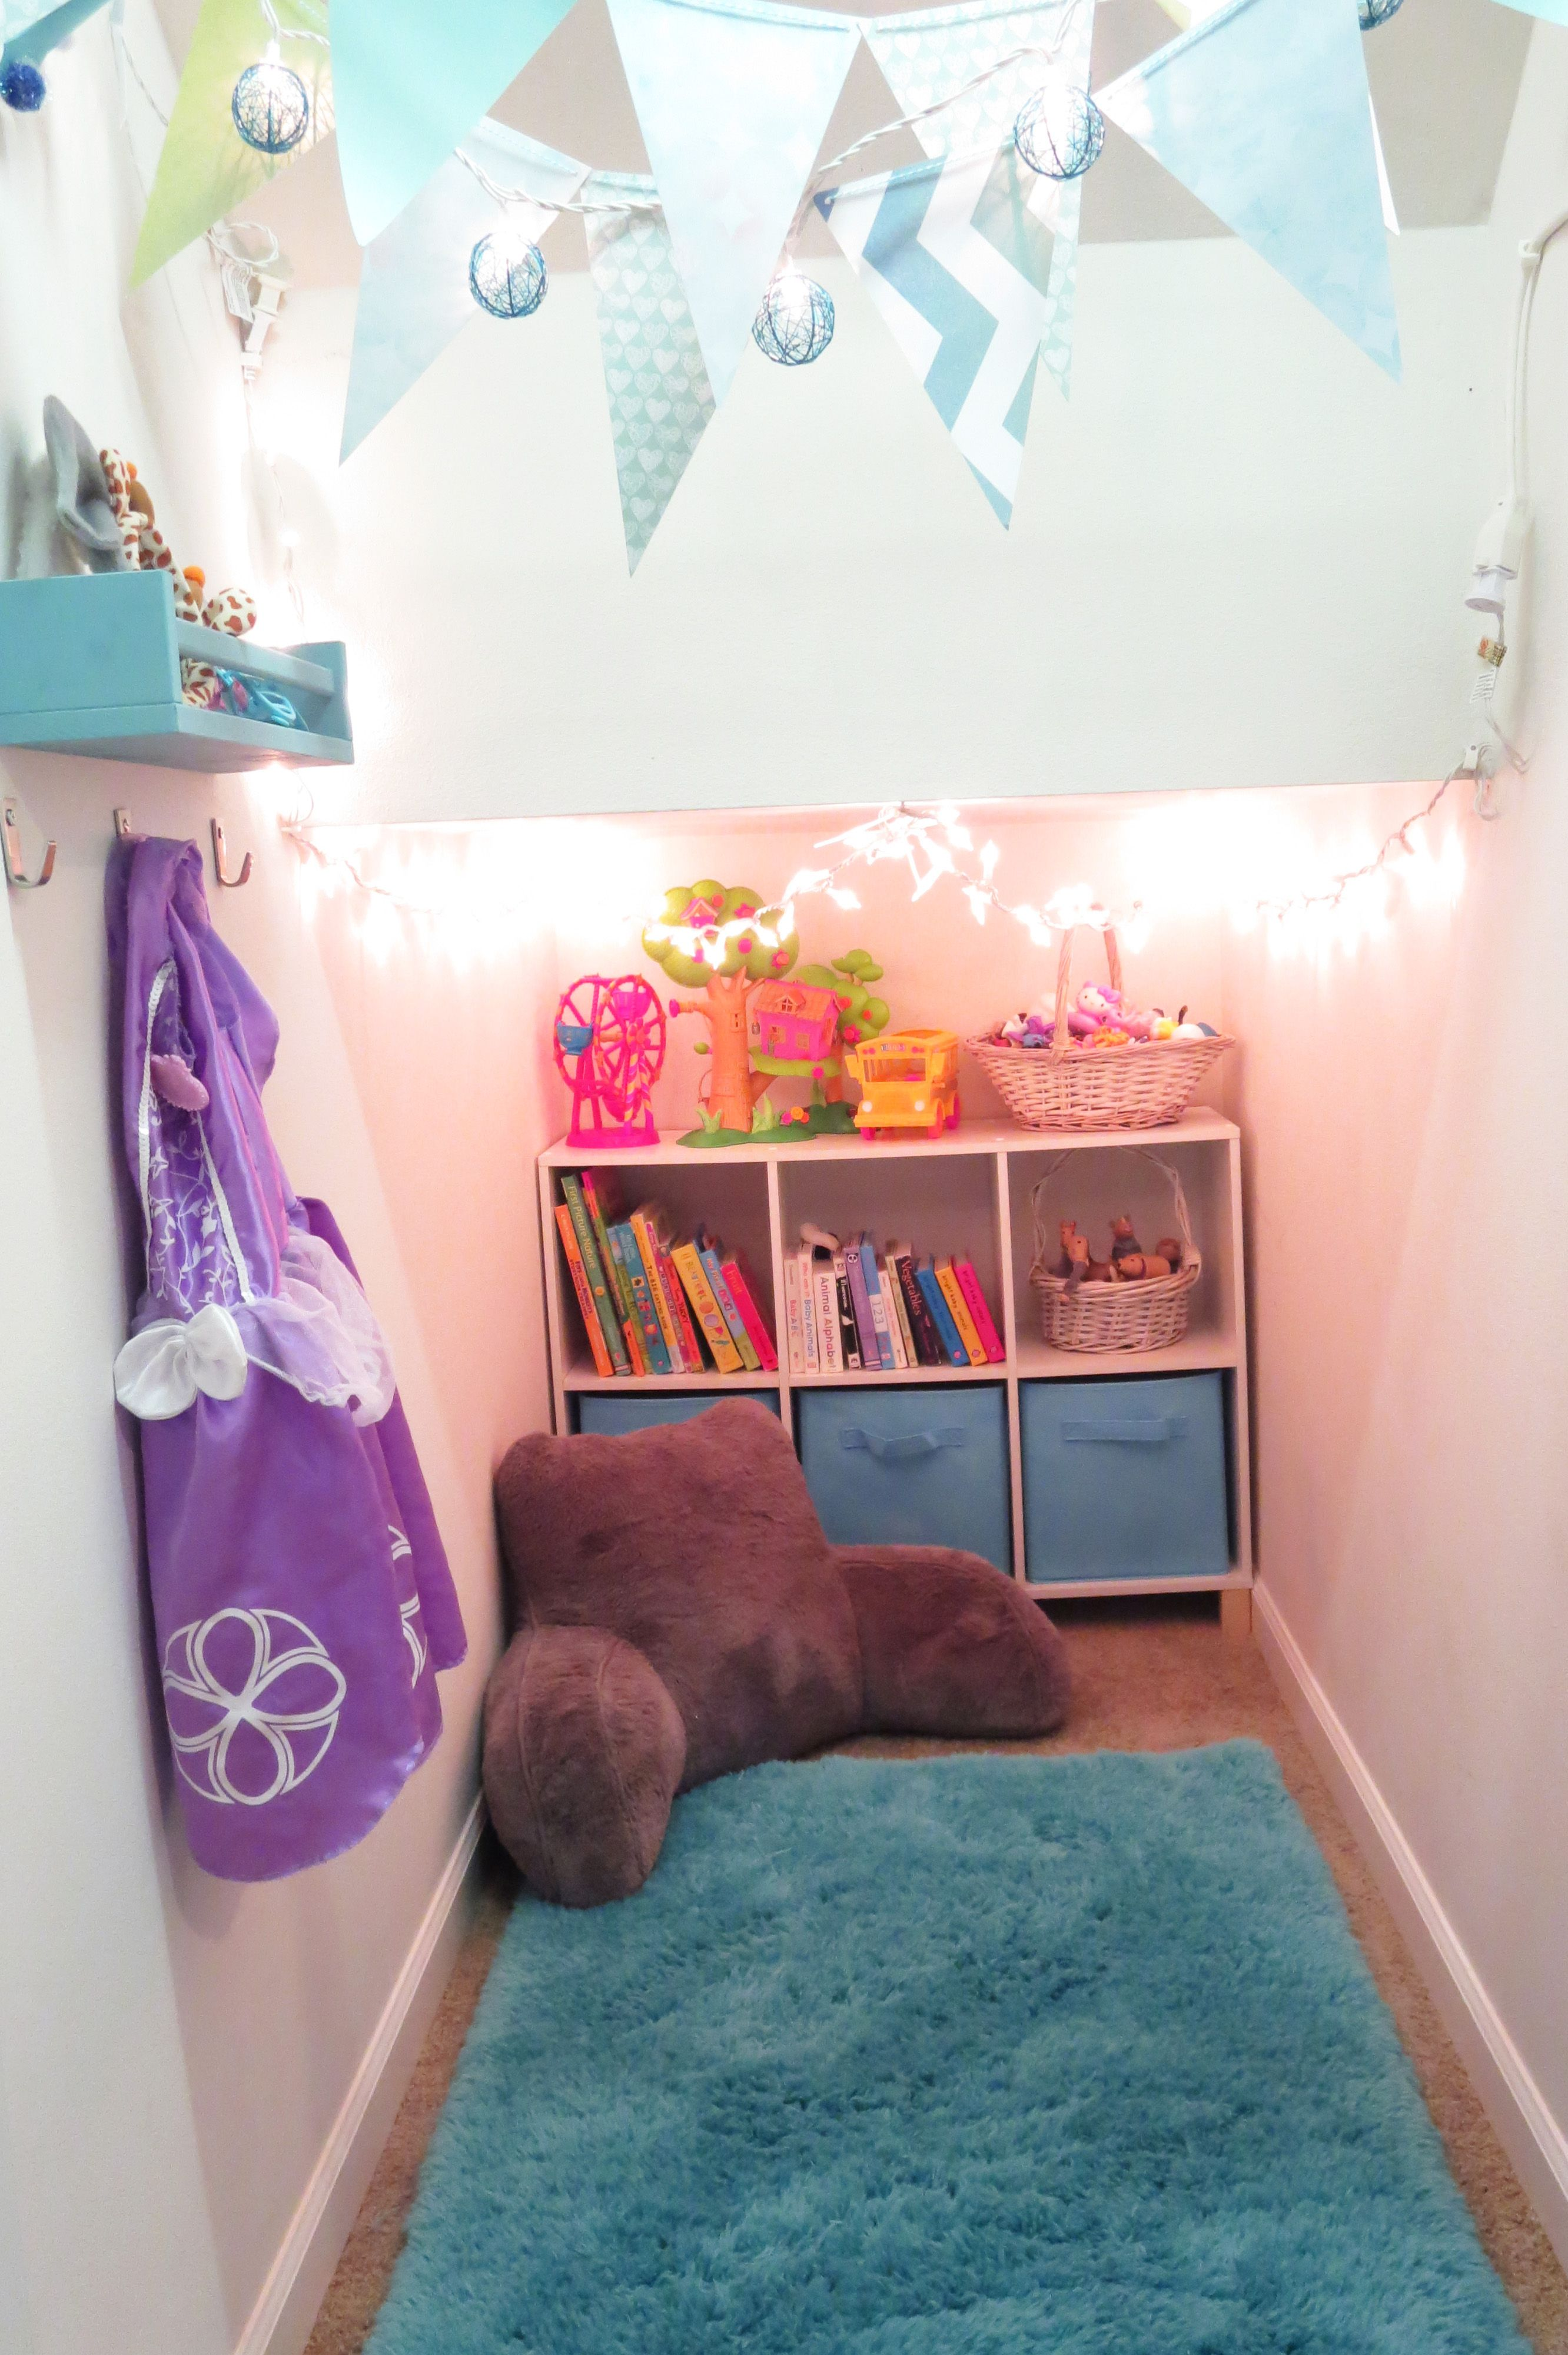 Playroom In A Closet Under The Stairs Twinkle Lights, Bue/turquoise